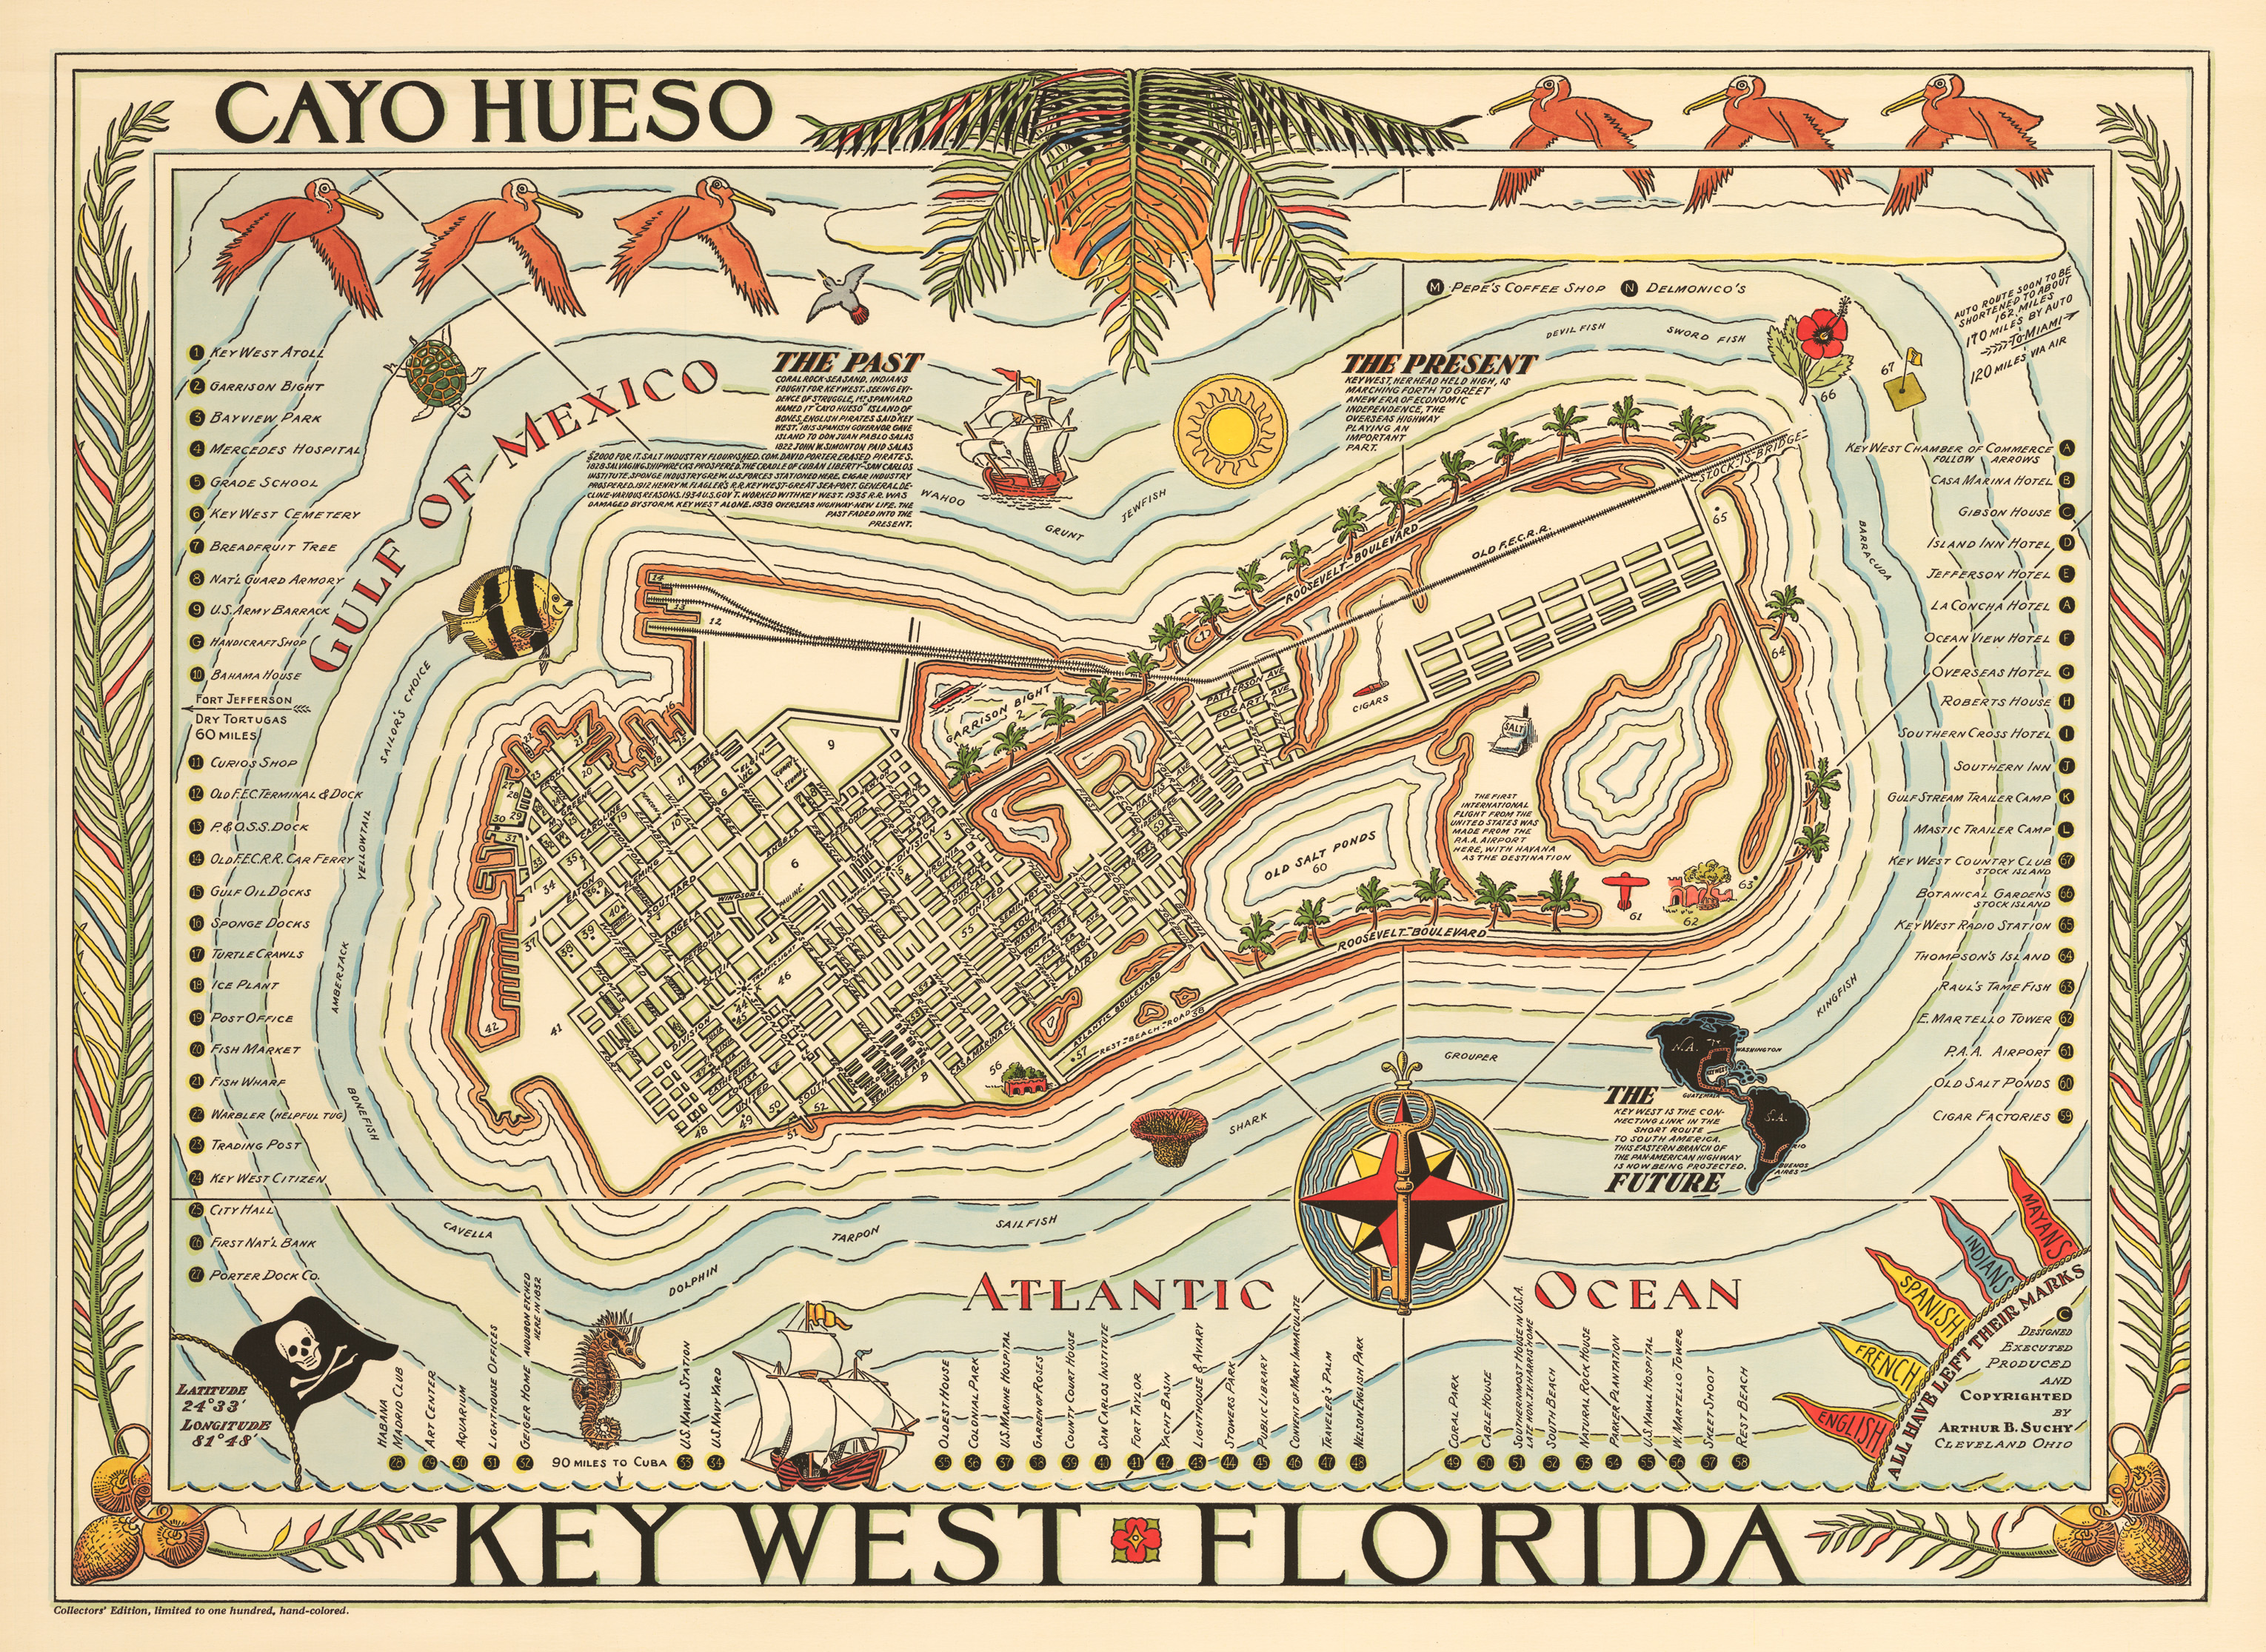 Vintage map key west florida cayo hueso 1940 hjbmaps high resolution image gumiabroncs Image collections